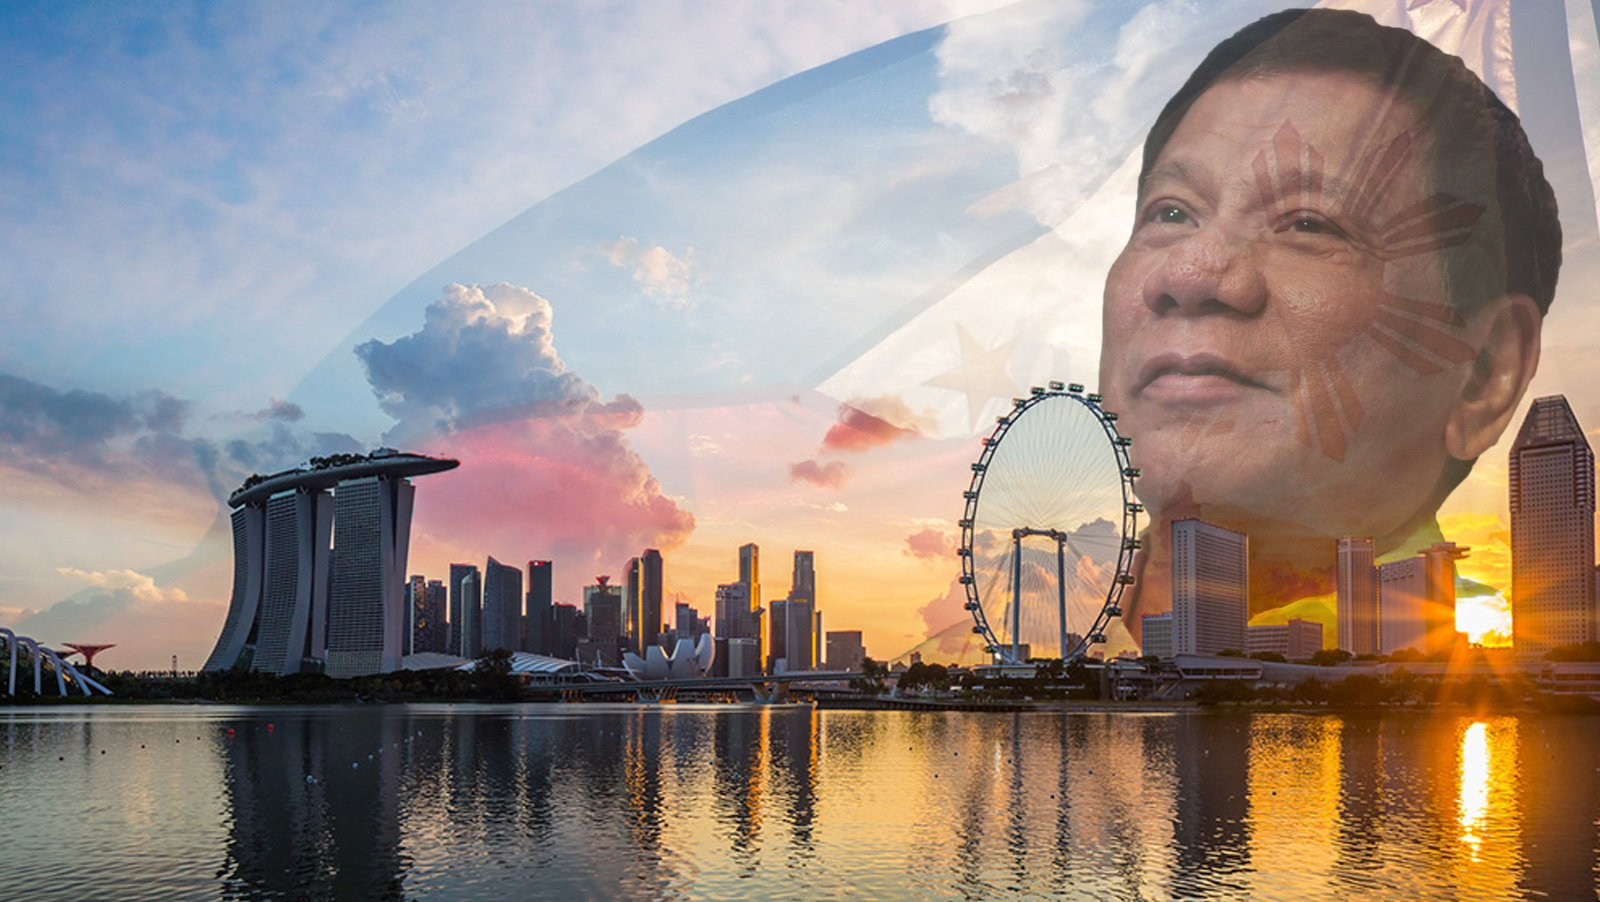 Philippines can overtake Singapore, but with higher risk